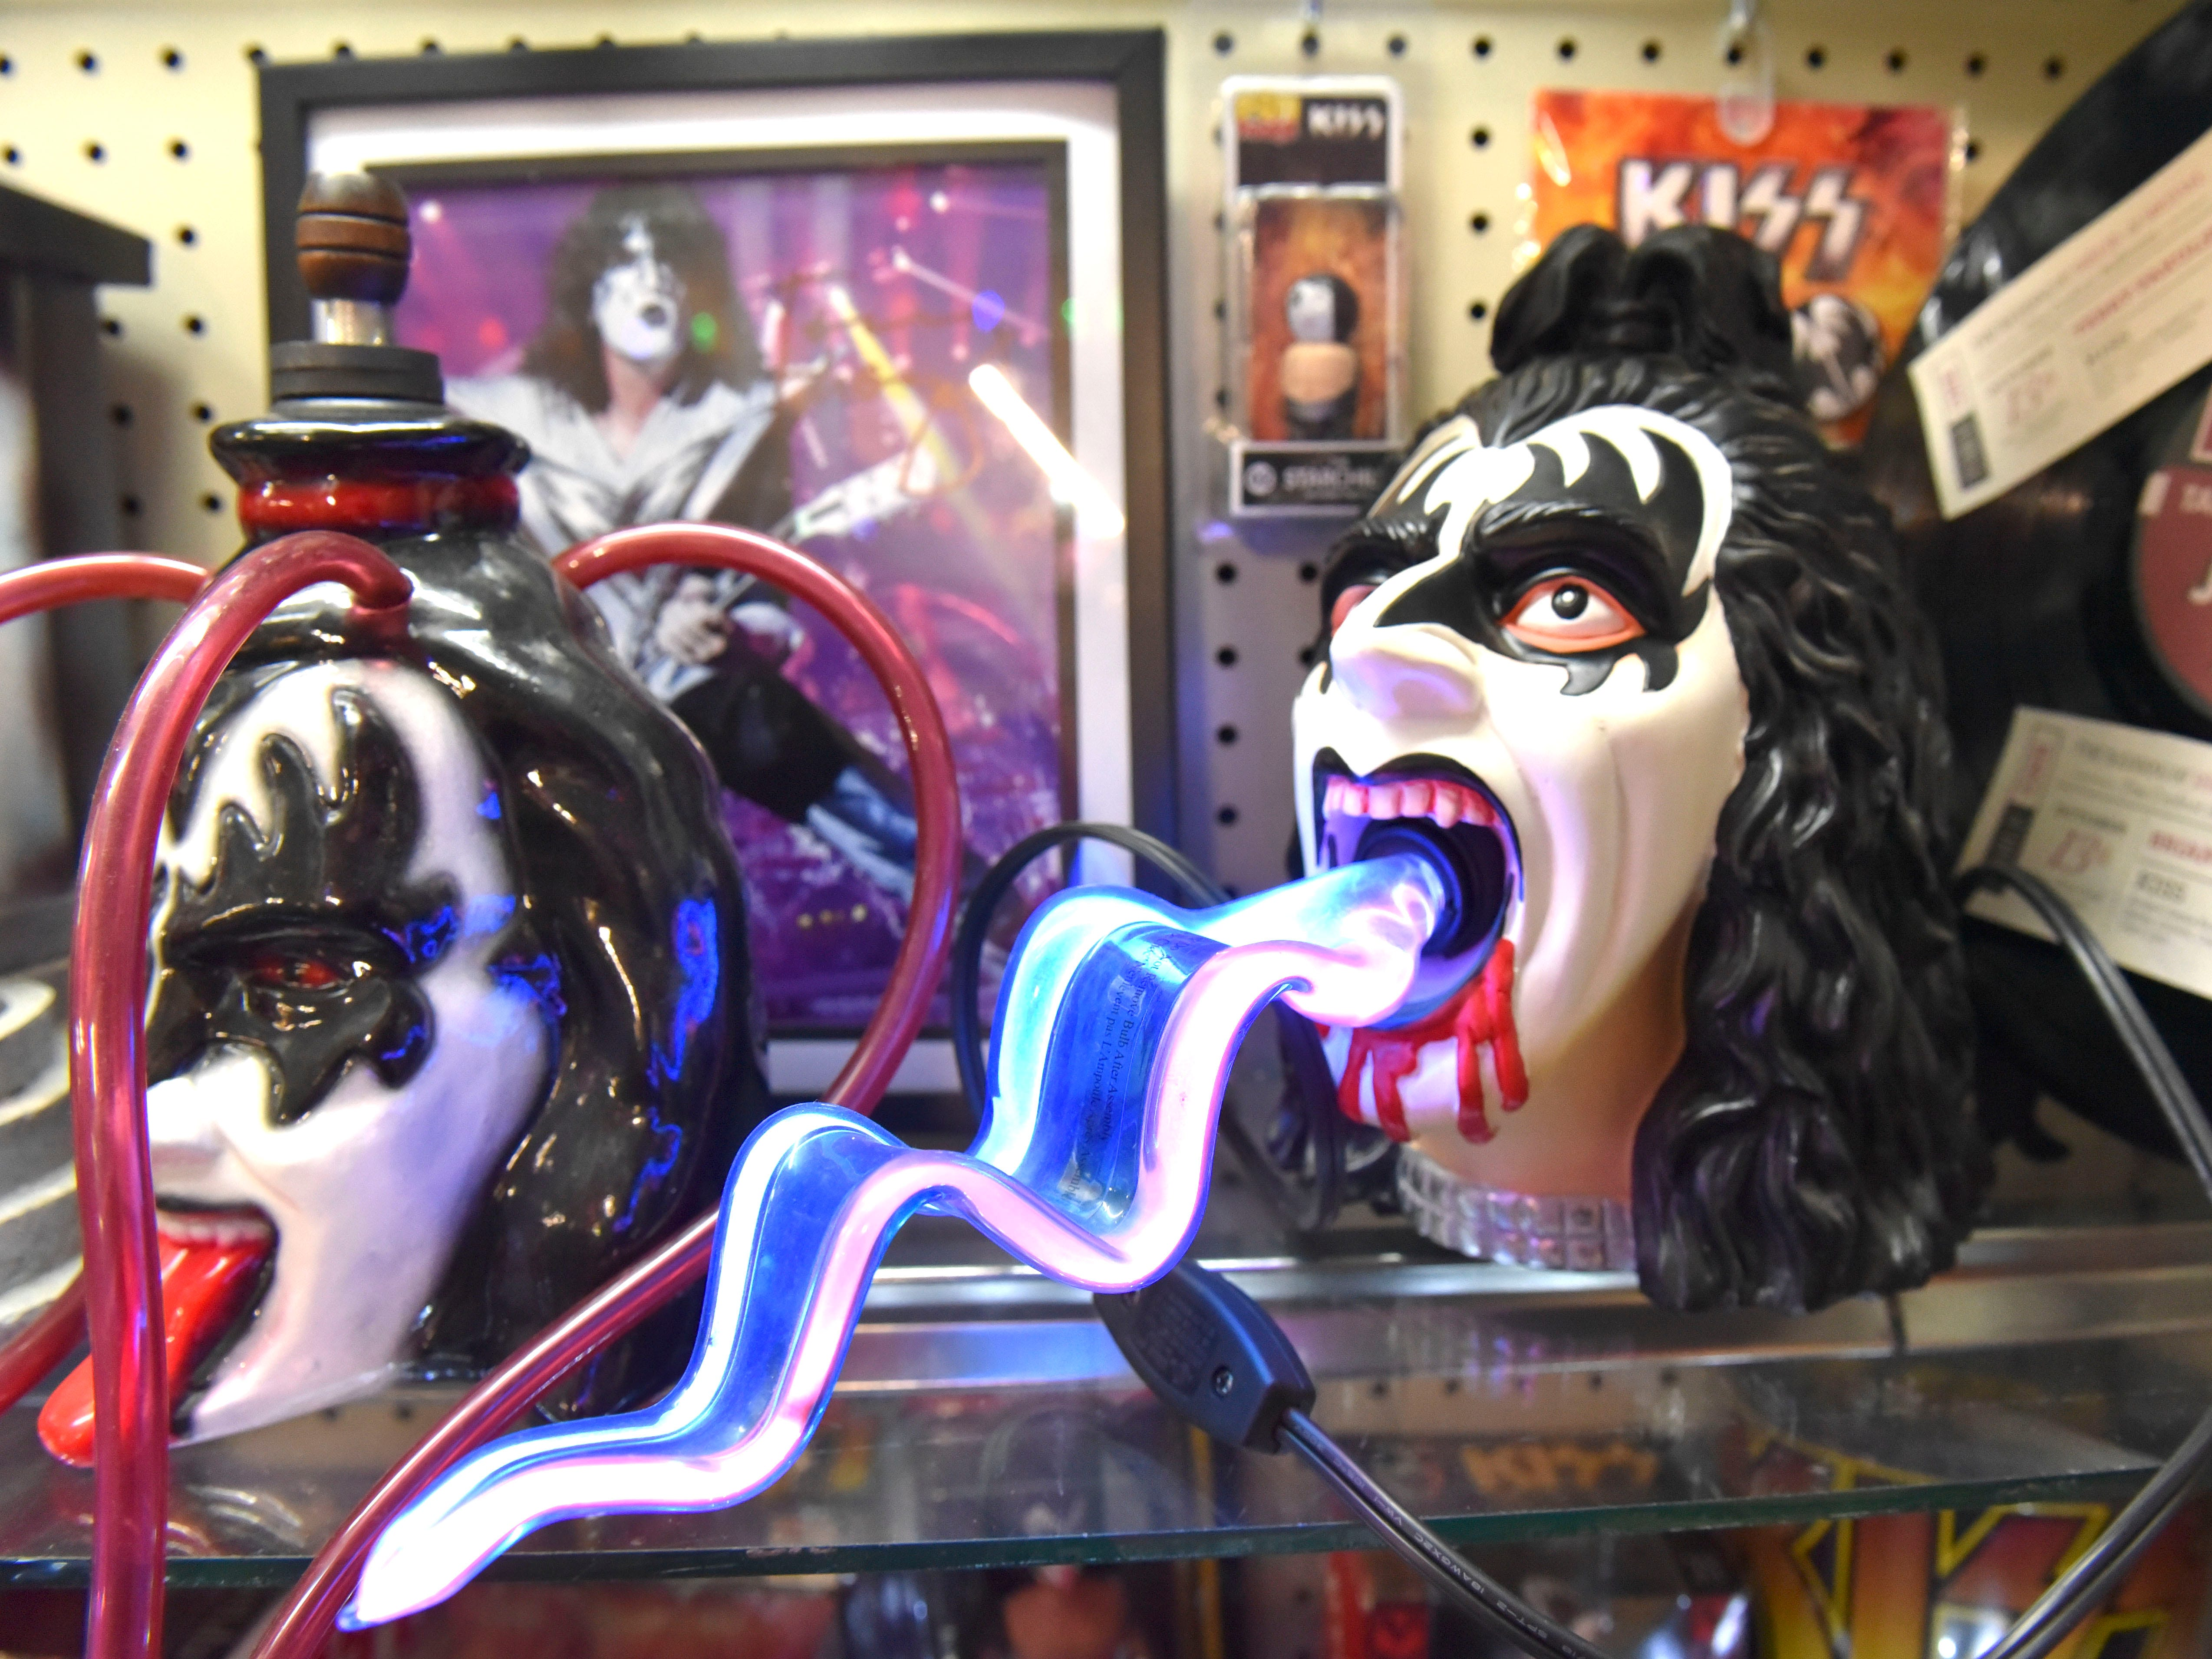 This is a Gene Simmons tongue lamp.